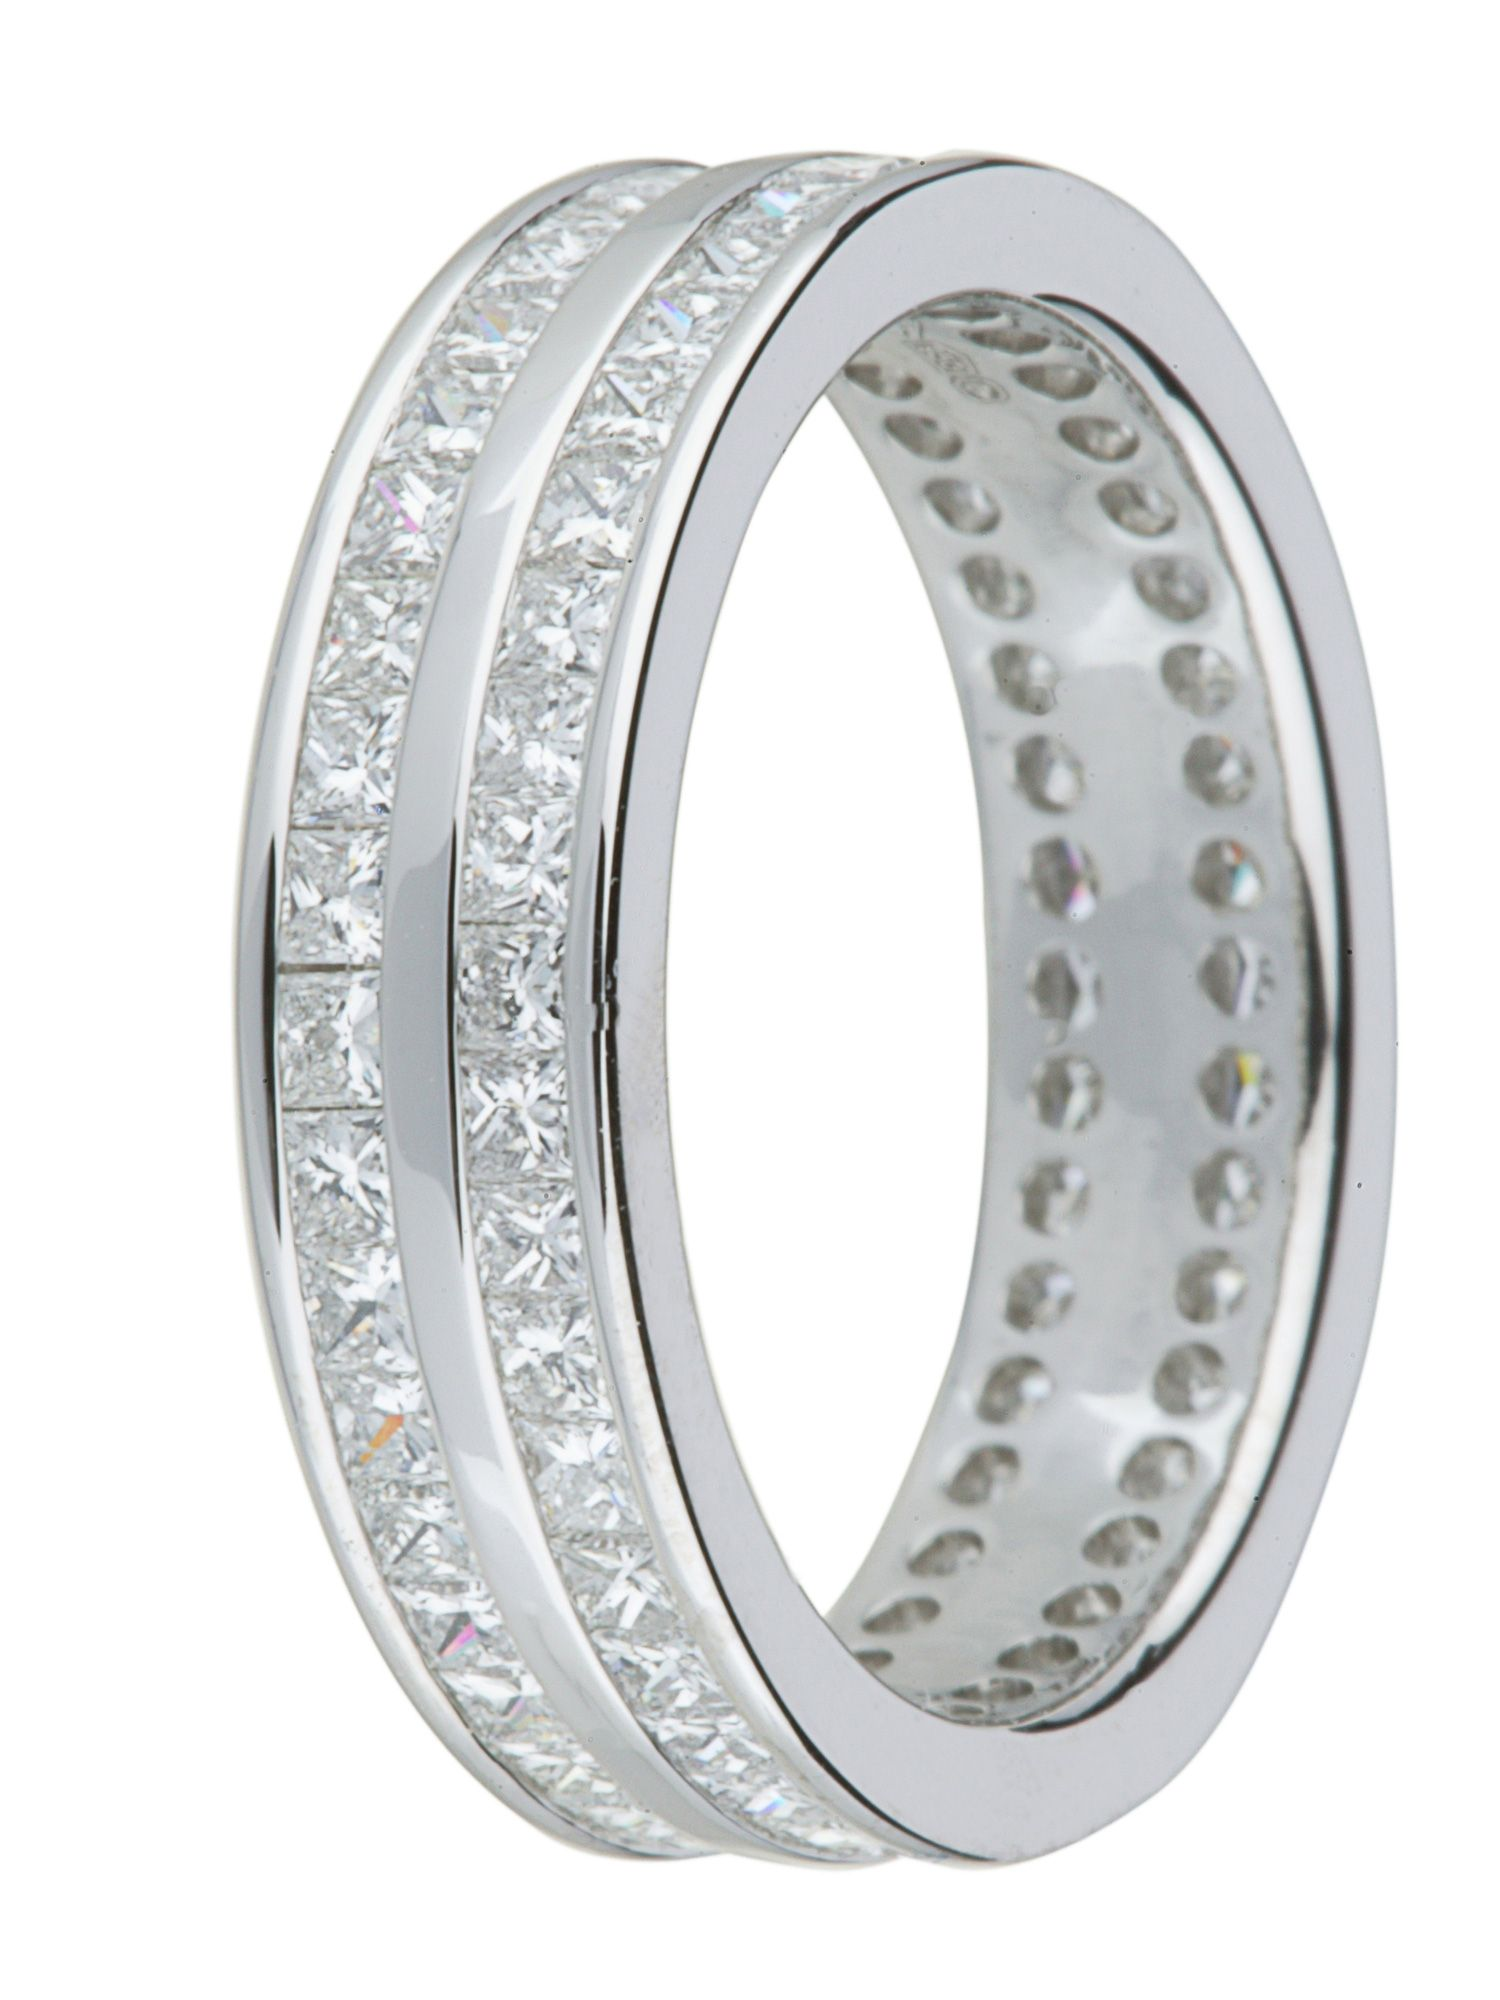 Brides platinum 2.00ct diamond wedding ring